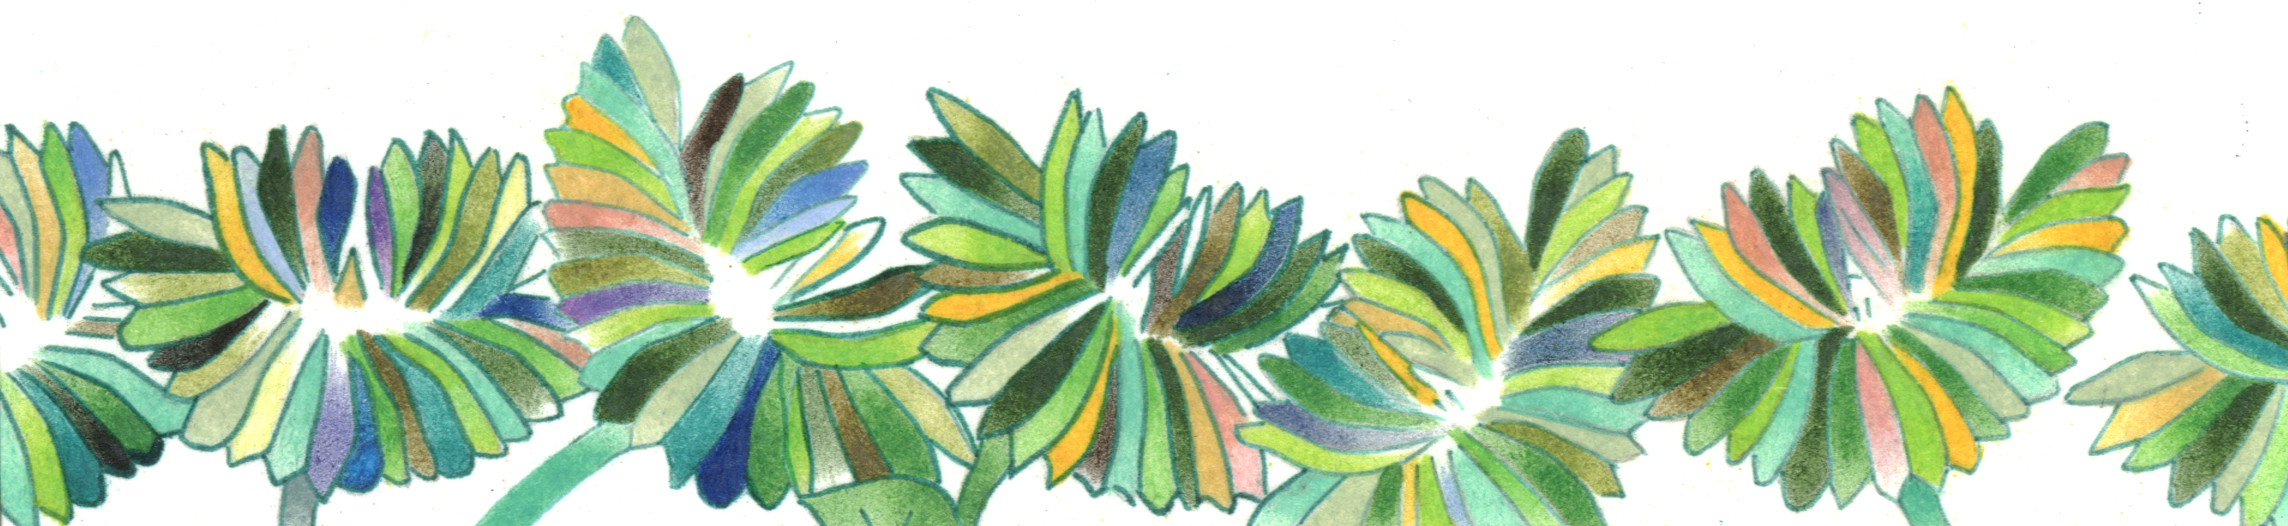 Botanical Illustrations and Detailed-Stylized Drawings